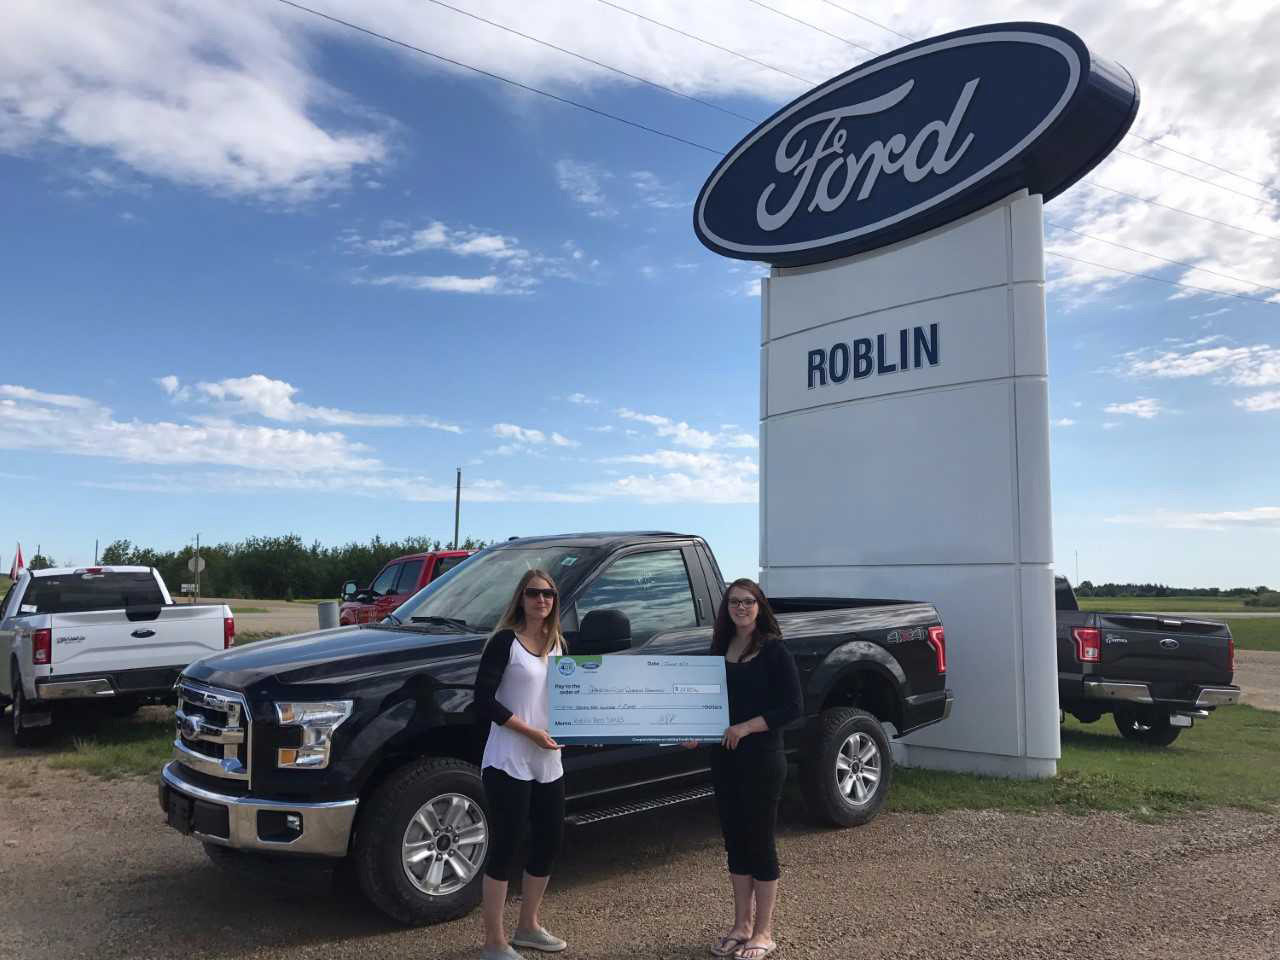 Outside the Ford dealership in Roblin with two women holding a large cheque in front of a Ford truck